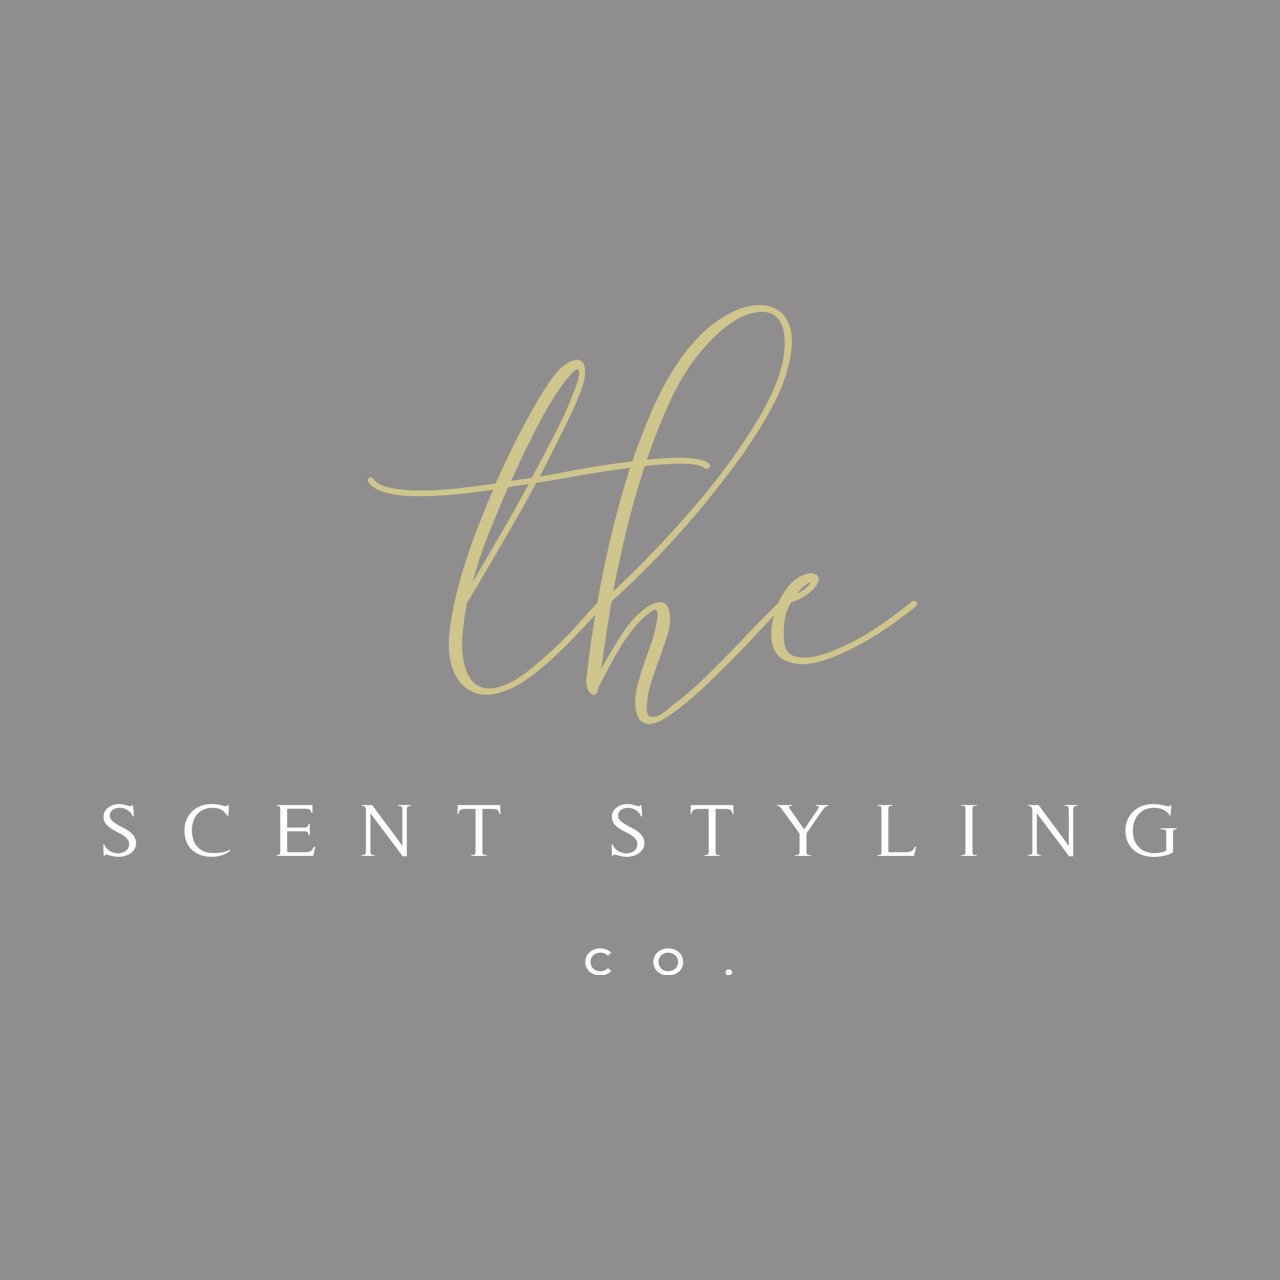 The Scent Styling Company